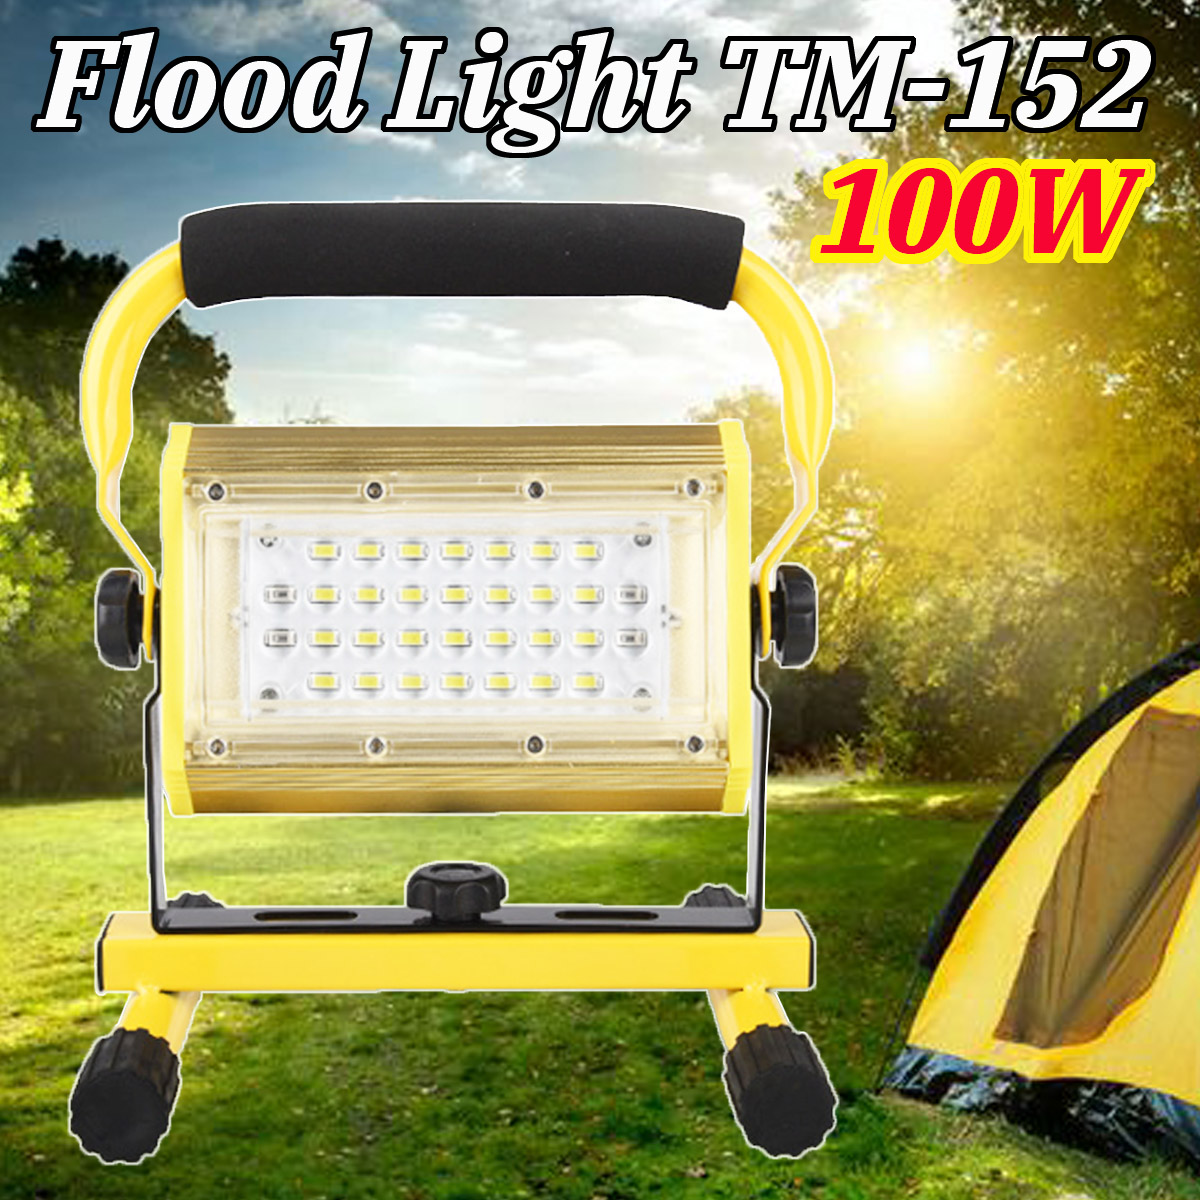 New 2400lm 100W LED Portable COB Flood Light LED Flashlight Work Light Waterproof IP65 for Outdoor Camping cob led work light waterproof lawn lamp flashlight 20w high power 2400lm outdoor hiking camping tent light portable searchlight